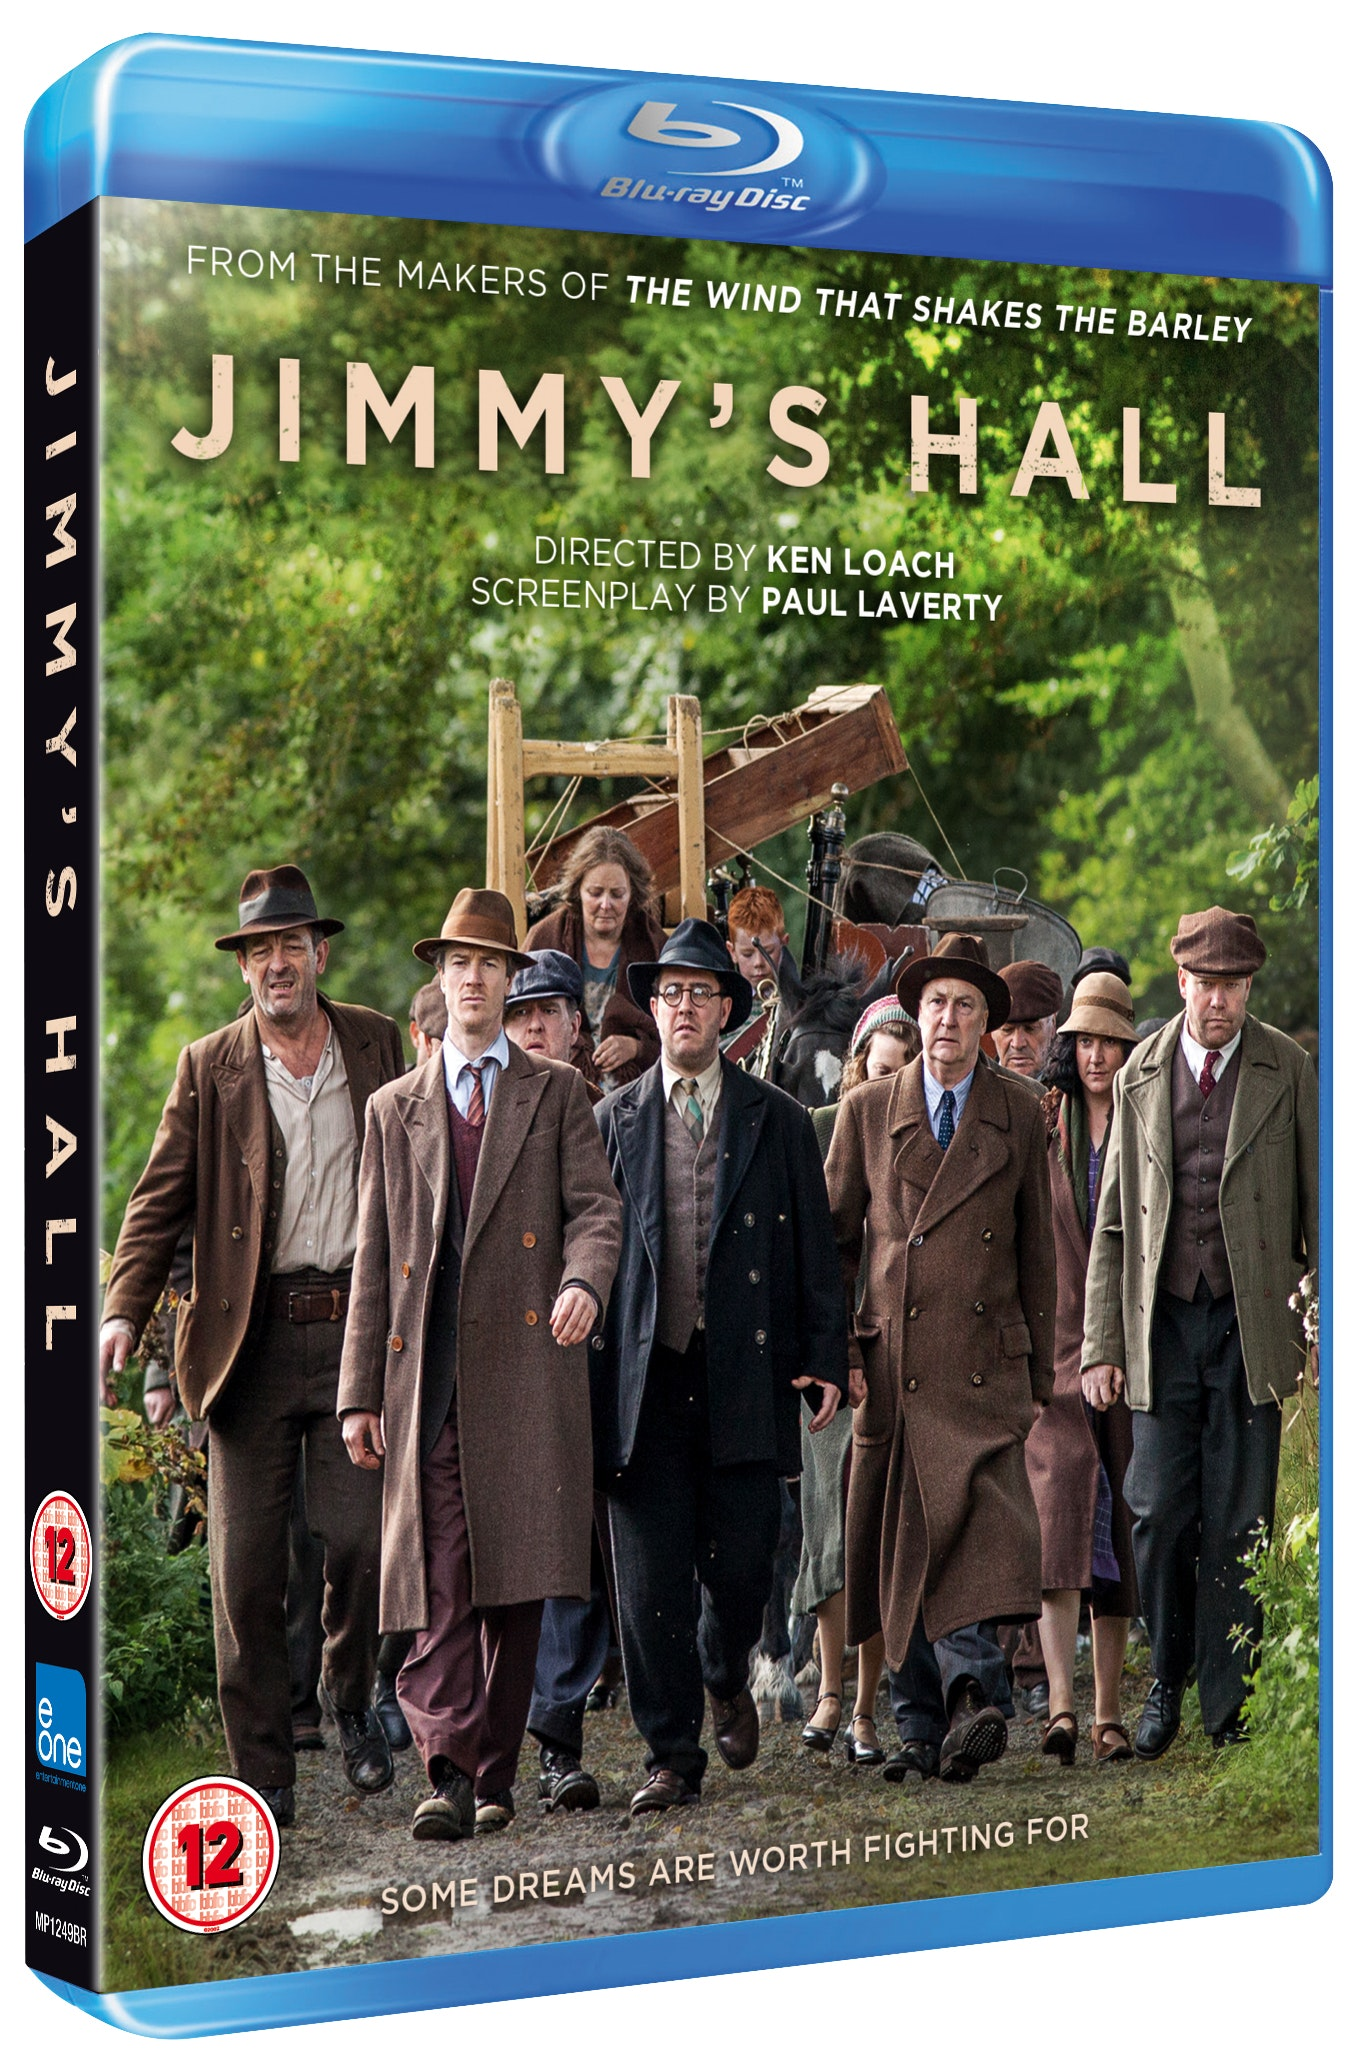 Jimmys Hall sweepstakes